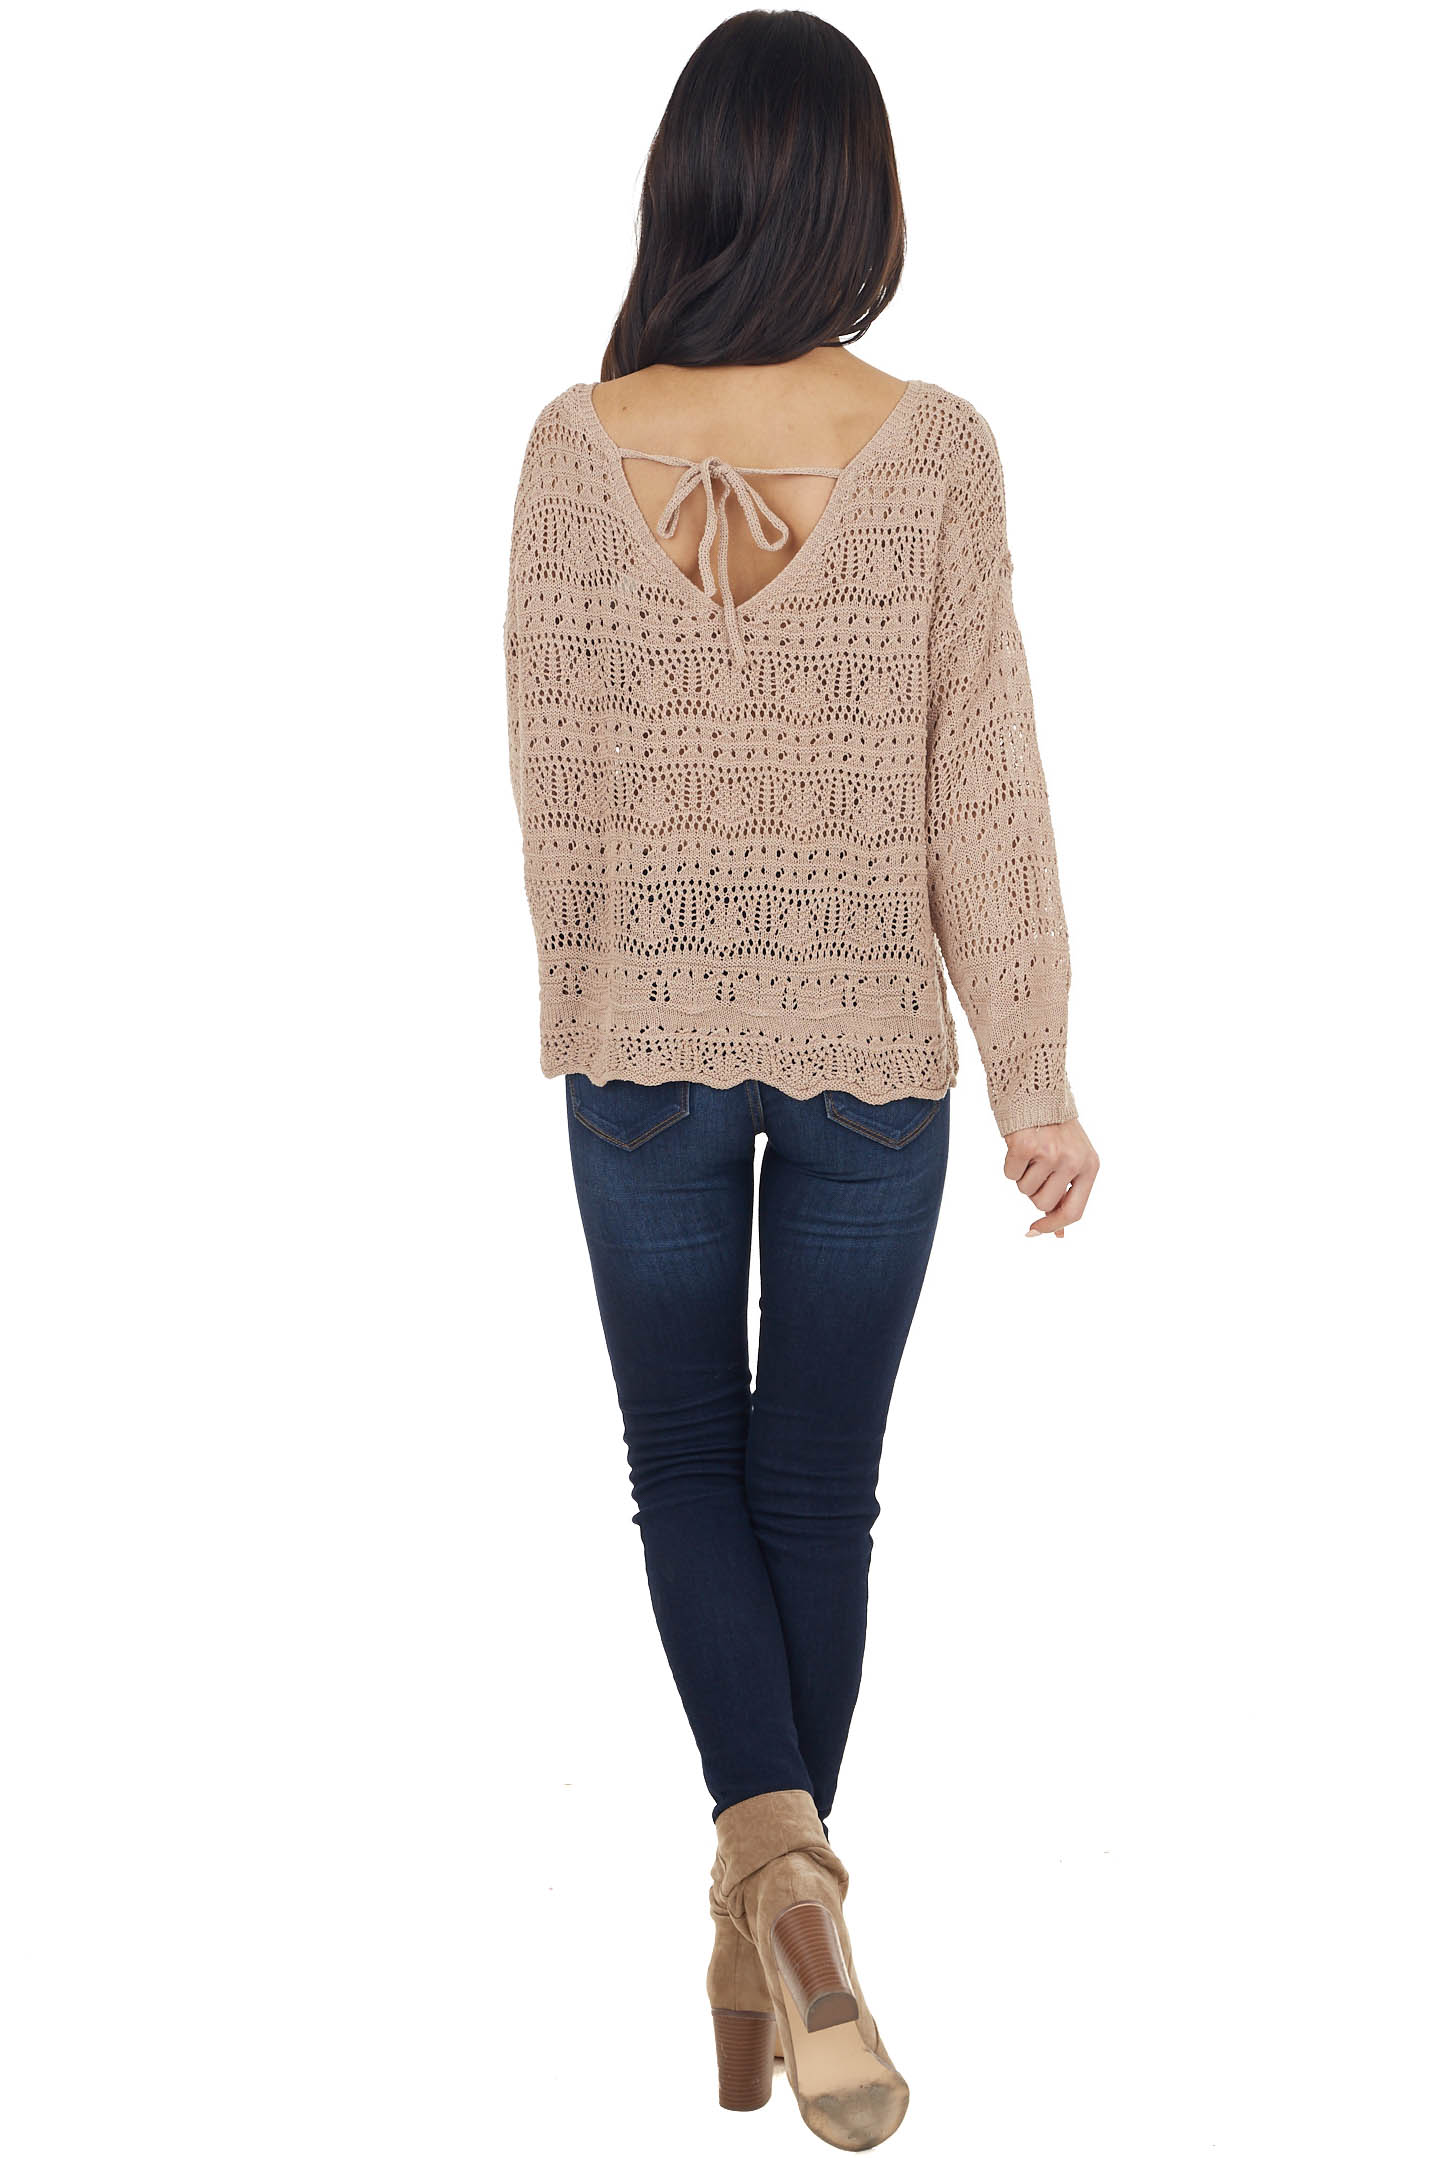 Latte Crochet Sweater with Back Tie and Scalloped Hem